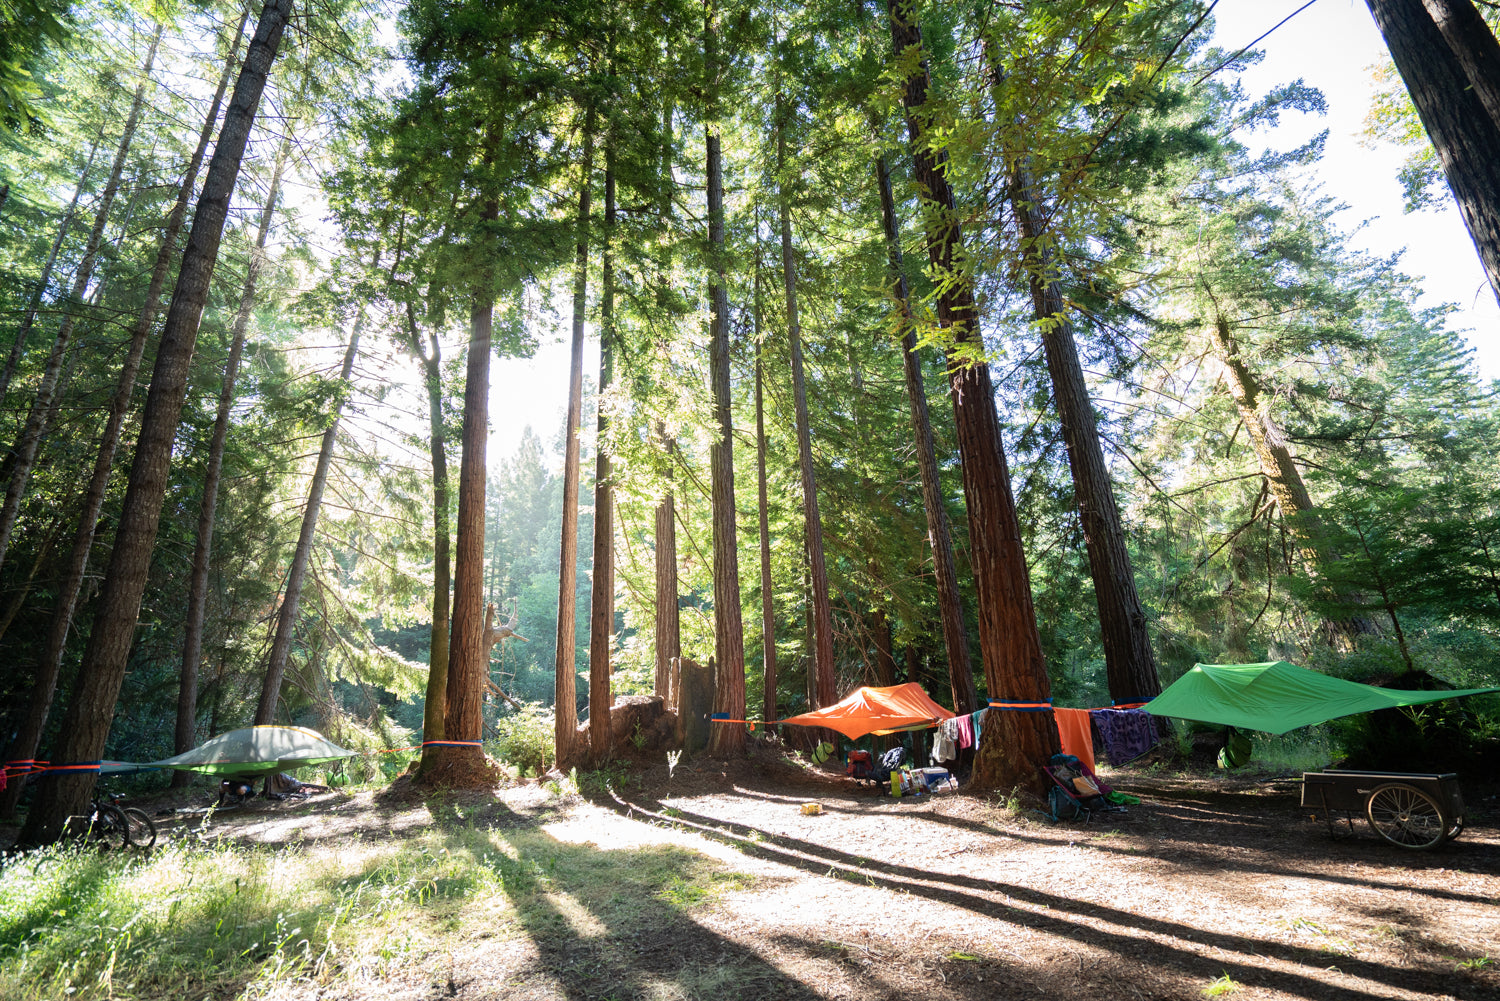 Top Places to Camp in Europe with a Tree Tent this Summer